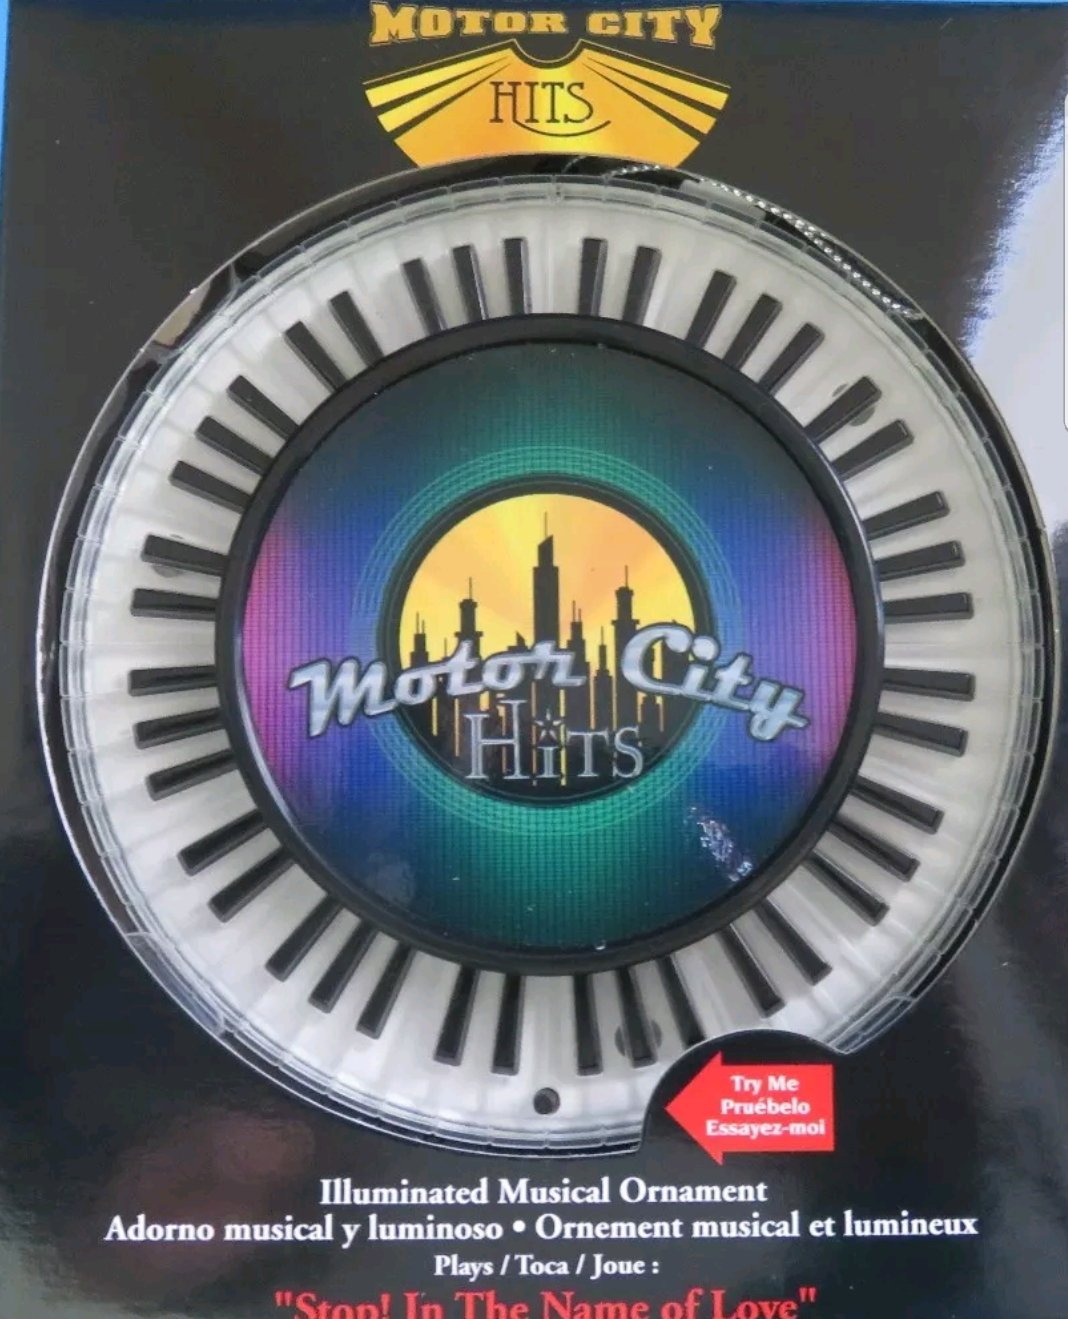 Motor City Hits Stop in the Name of Love by the Supremes Illuminated Musical Christmas Tree Ornament Motown